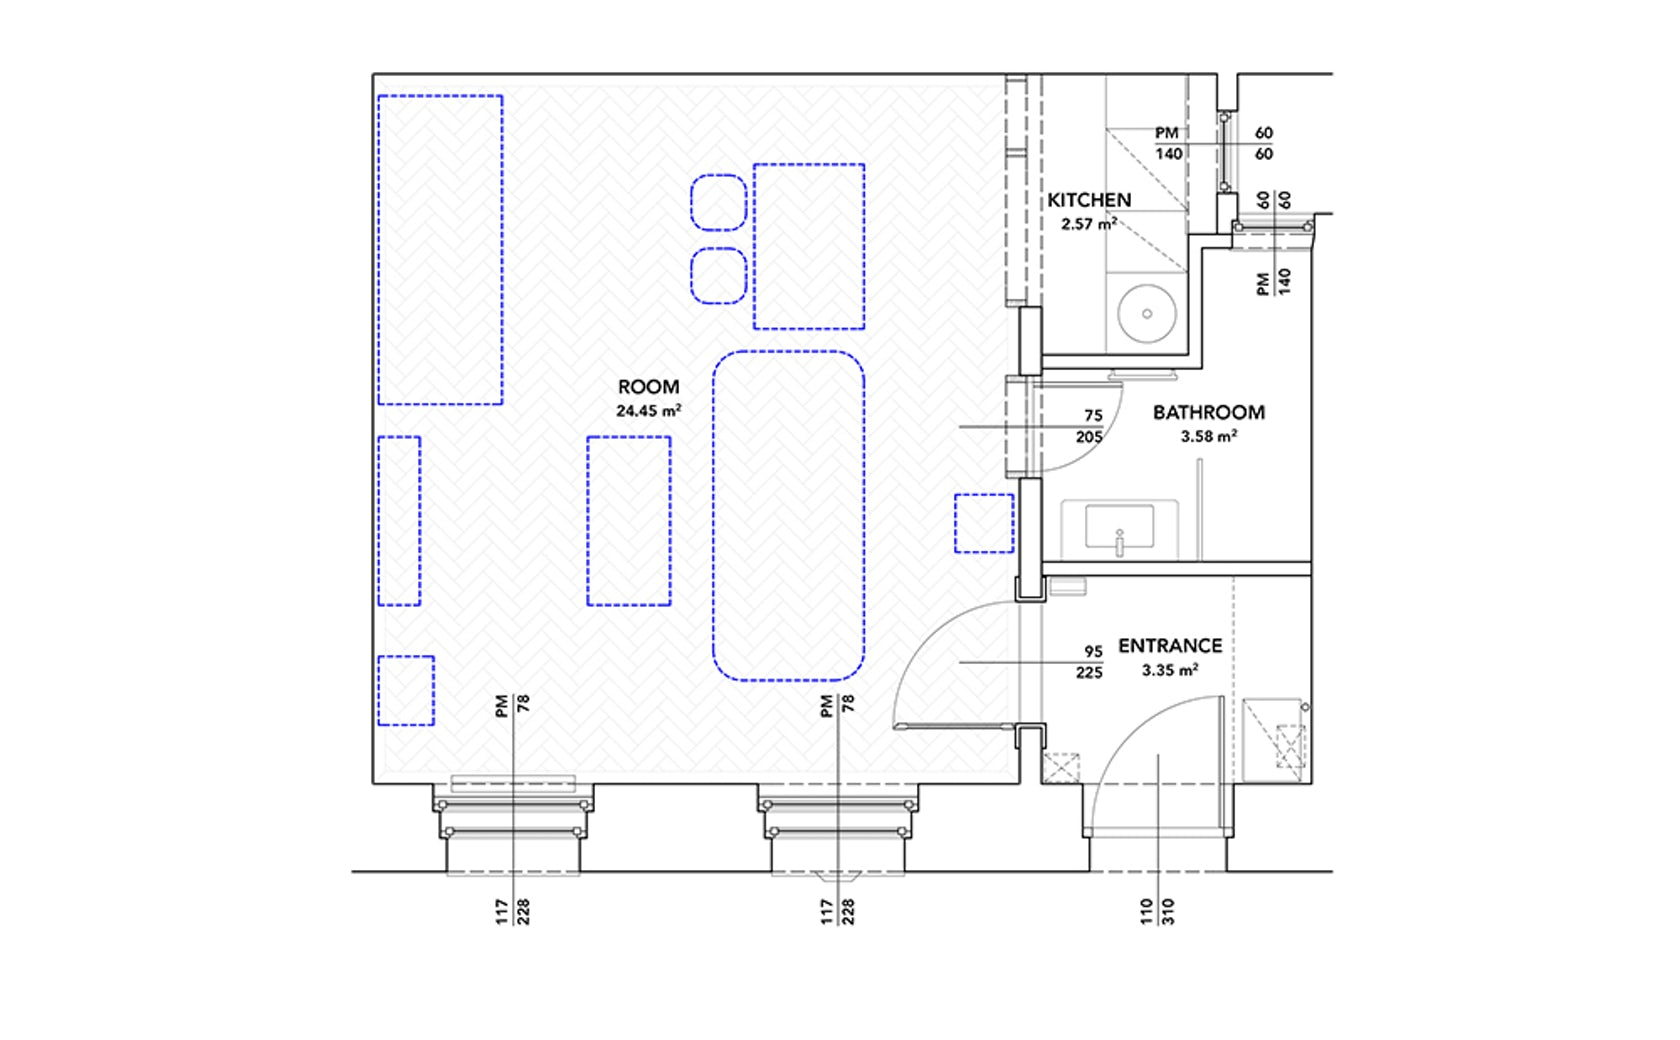 Architectural Drawings: 10 Clever Plans for Tiny Apartments ... on framing plans, narrow yard landscaping ideas, narrow sink, narrow house layout, narrow home, narrow 3 story house, narrow lot house, narrow house interior design, narrow windows, narrow house roof, narrow art, narrow beach house, narrow kitchens, small lake lot plans, narrow house elevations, narrow bedroom, narrow doors, narrow modern house, narrow garden, narrow cabinets,